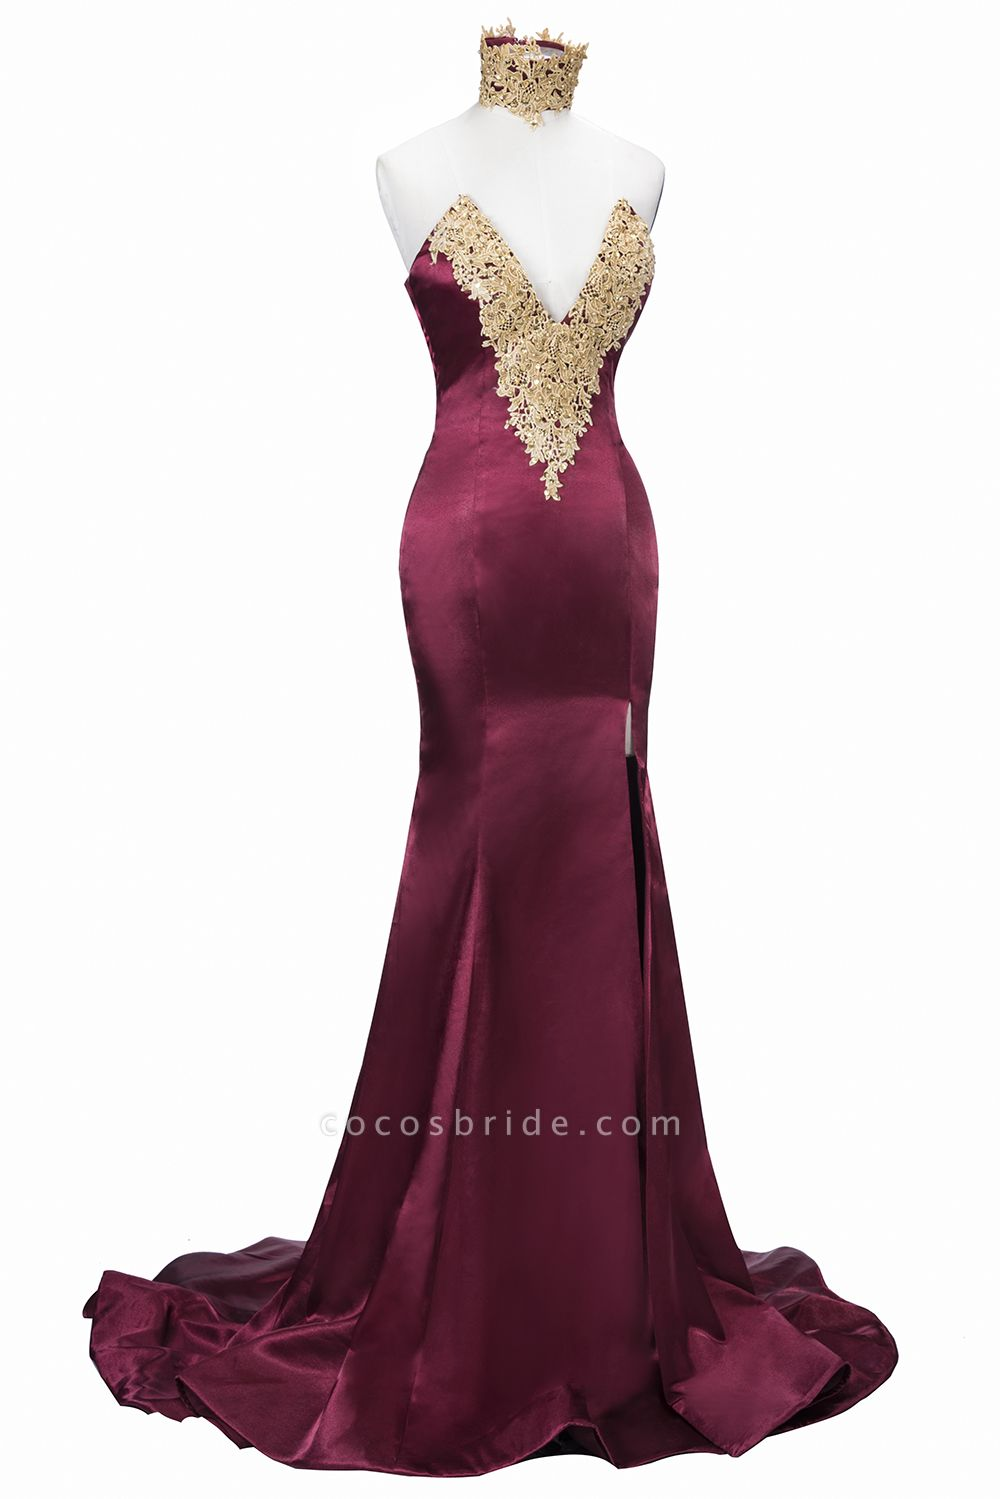 THERESIA | Mermaid High Neck Front-Split Burgundy Lace Appliques Prom Dresses